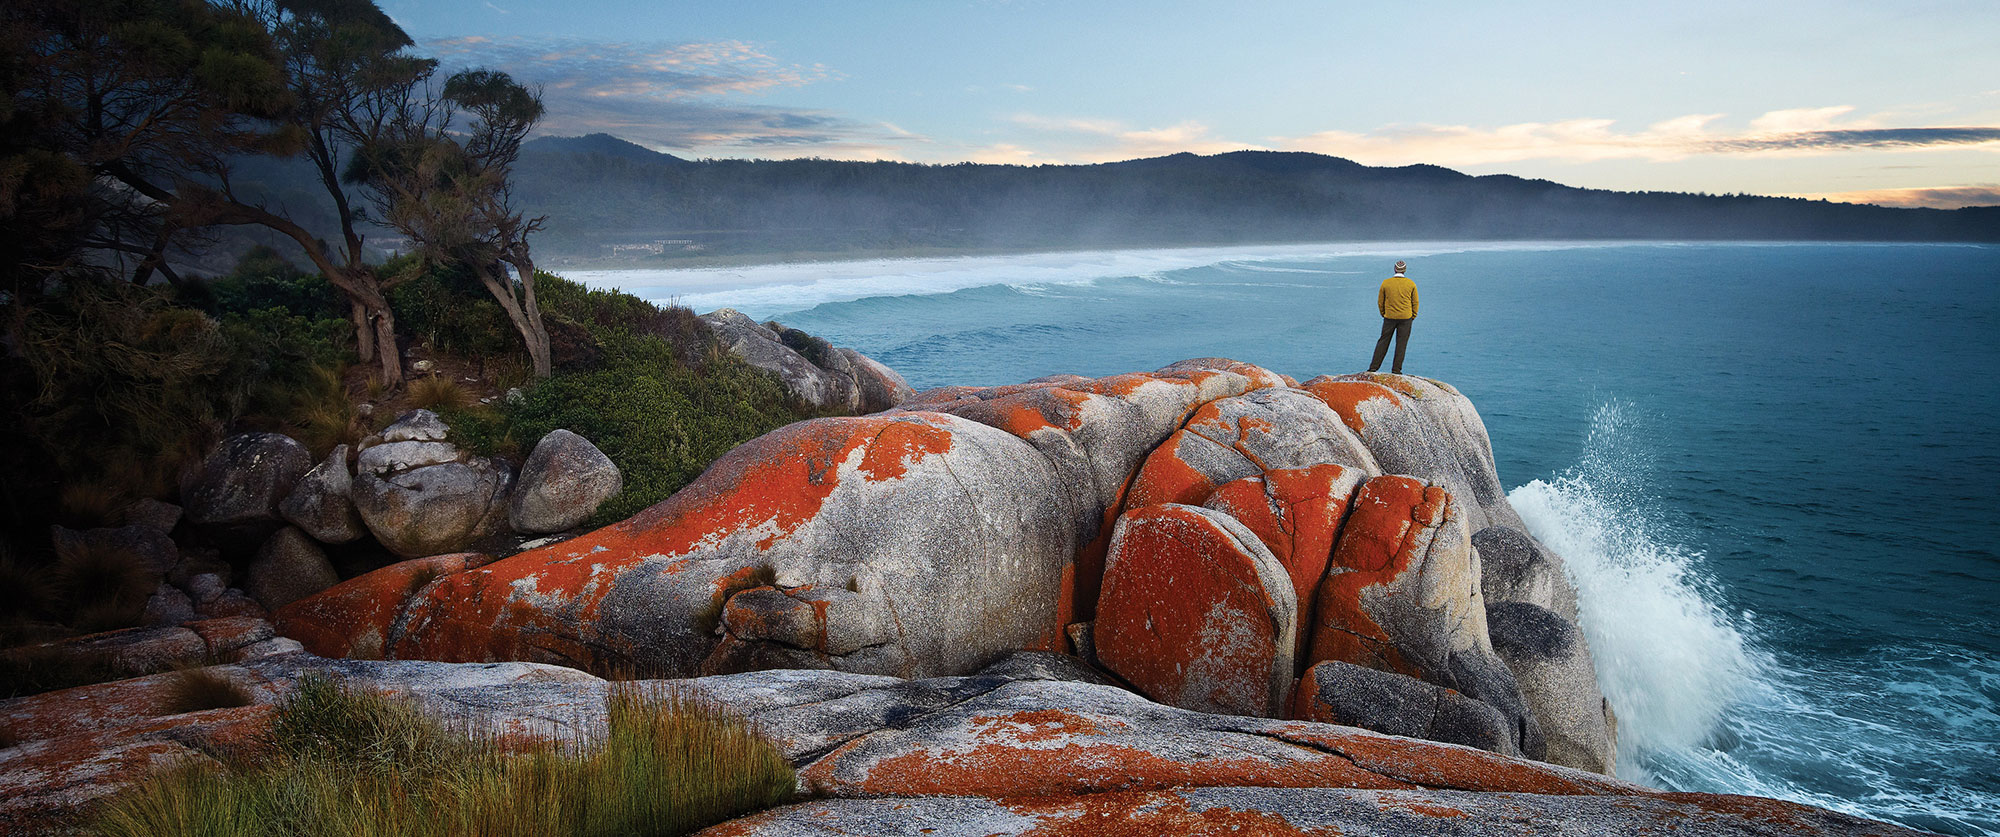 Australia and Tasmania: Food, Wine, and Wildlife - Binnalong Bay, Bay of Fires